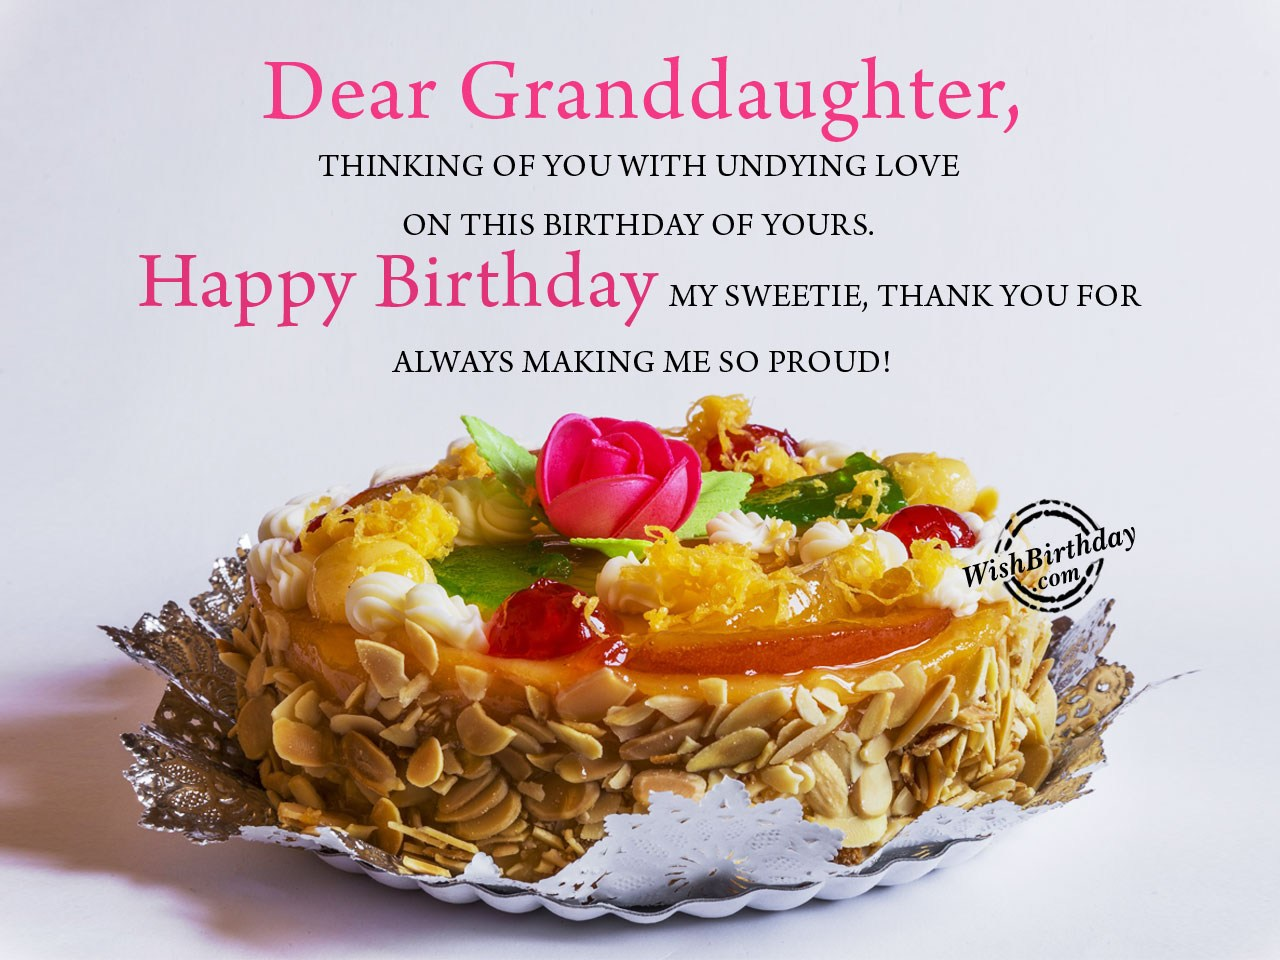 Dear Granddaughter Happy Birthday